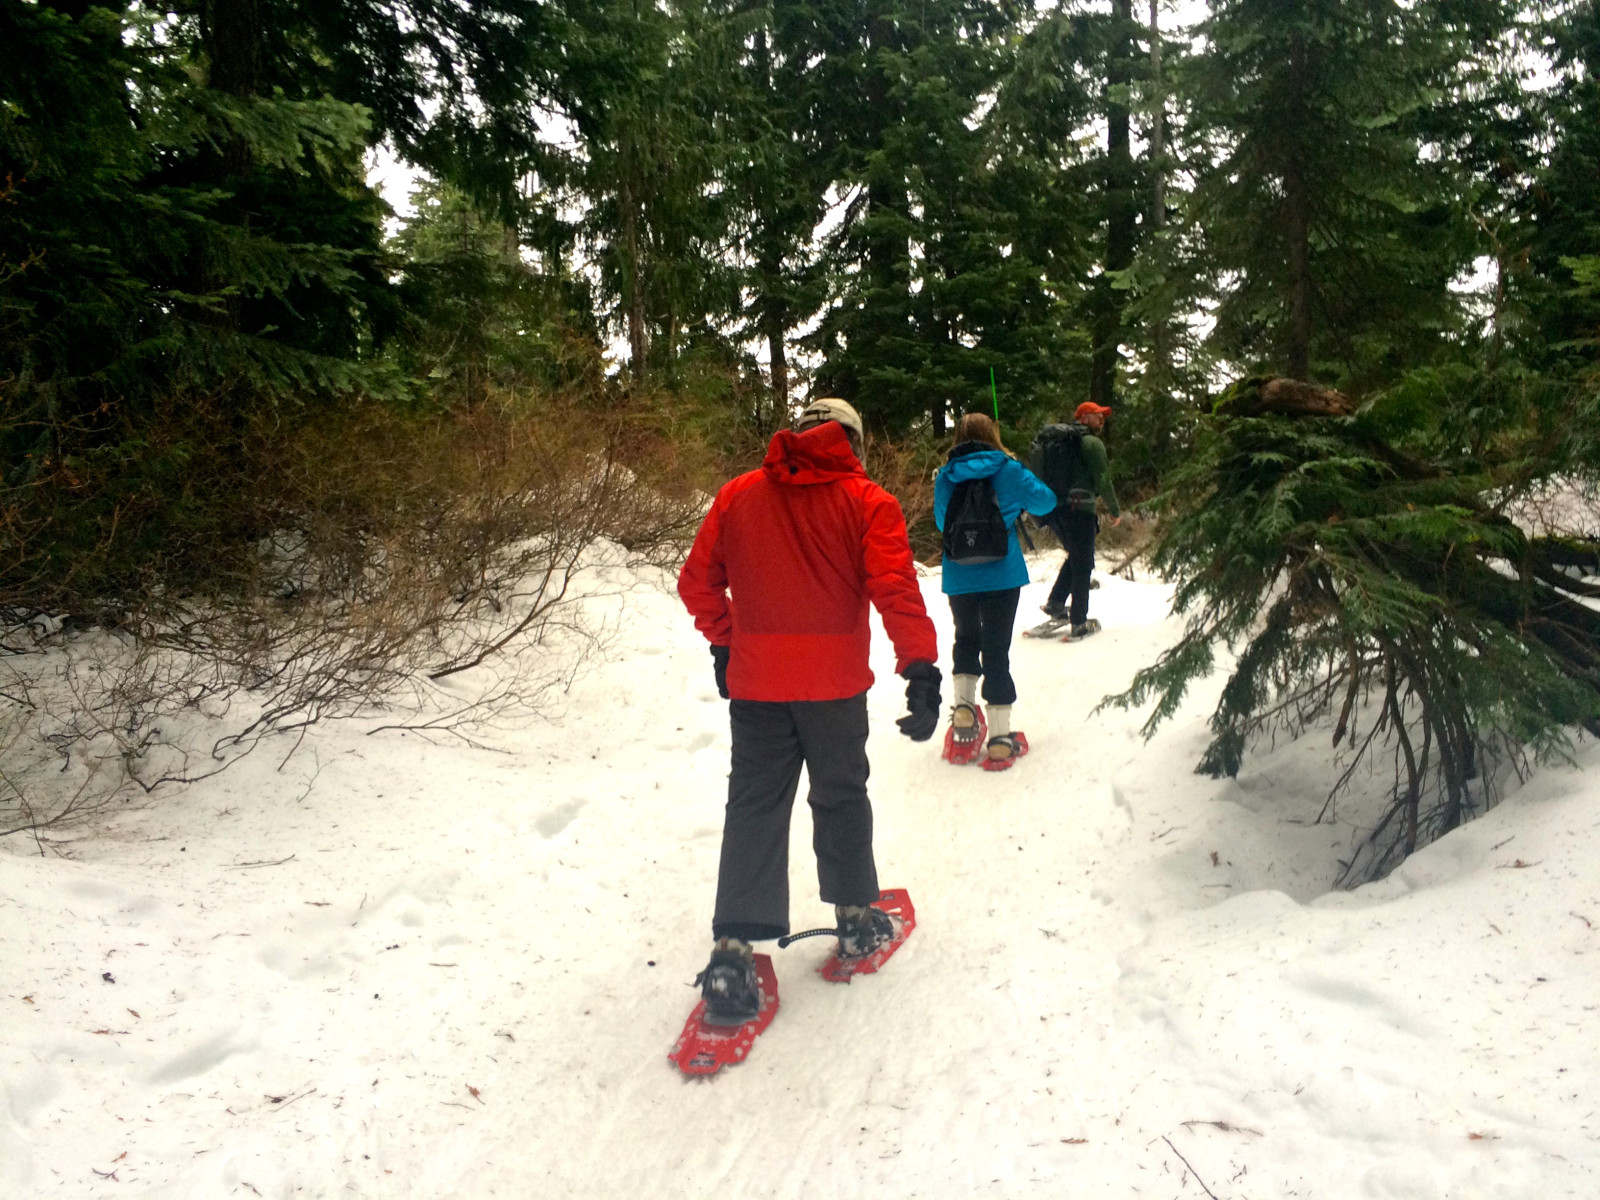 Travel Fitness - Snowshoeing